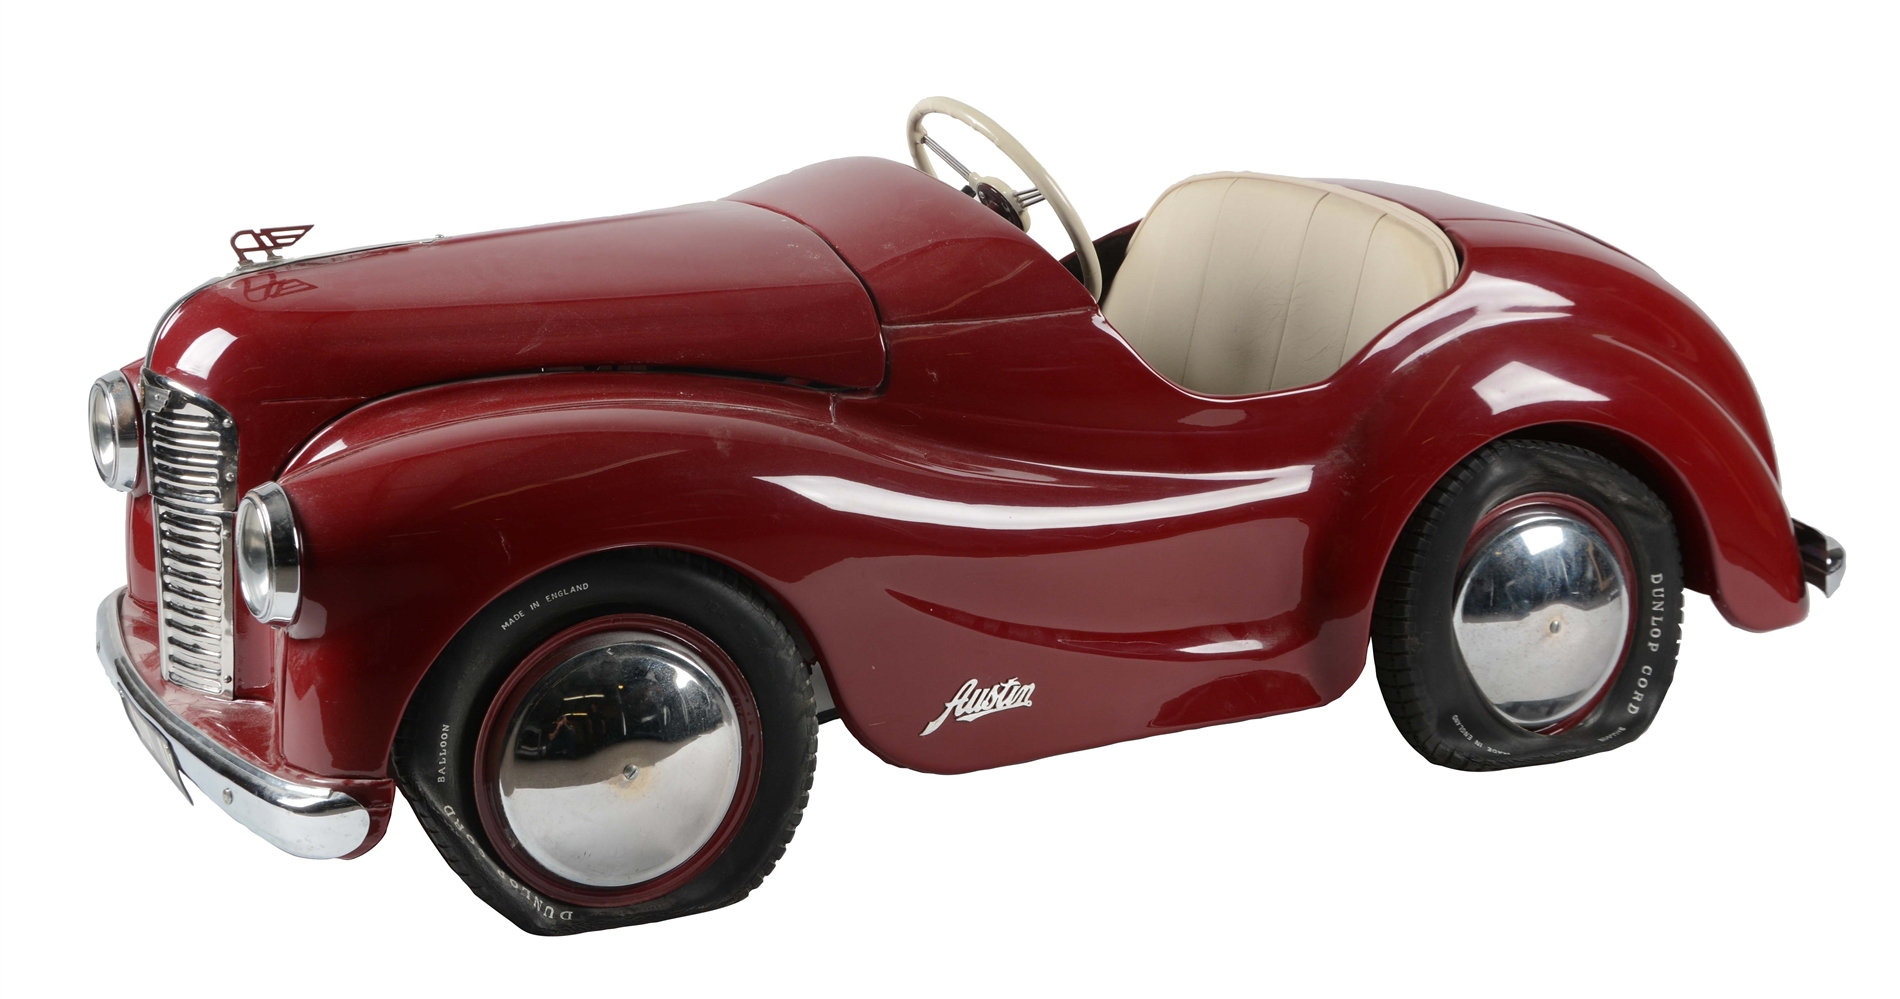 Pressed Steel Austin J40 Triang Pedal Car.